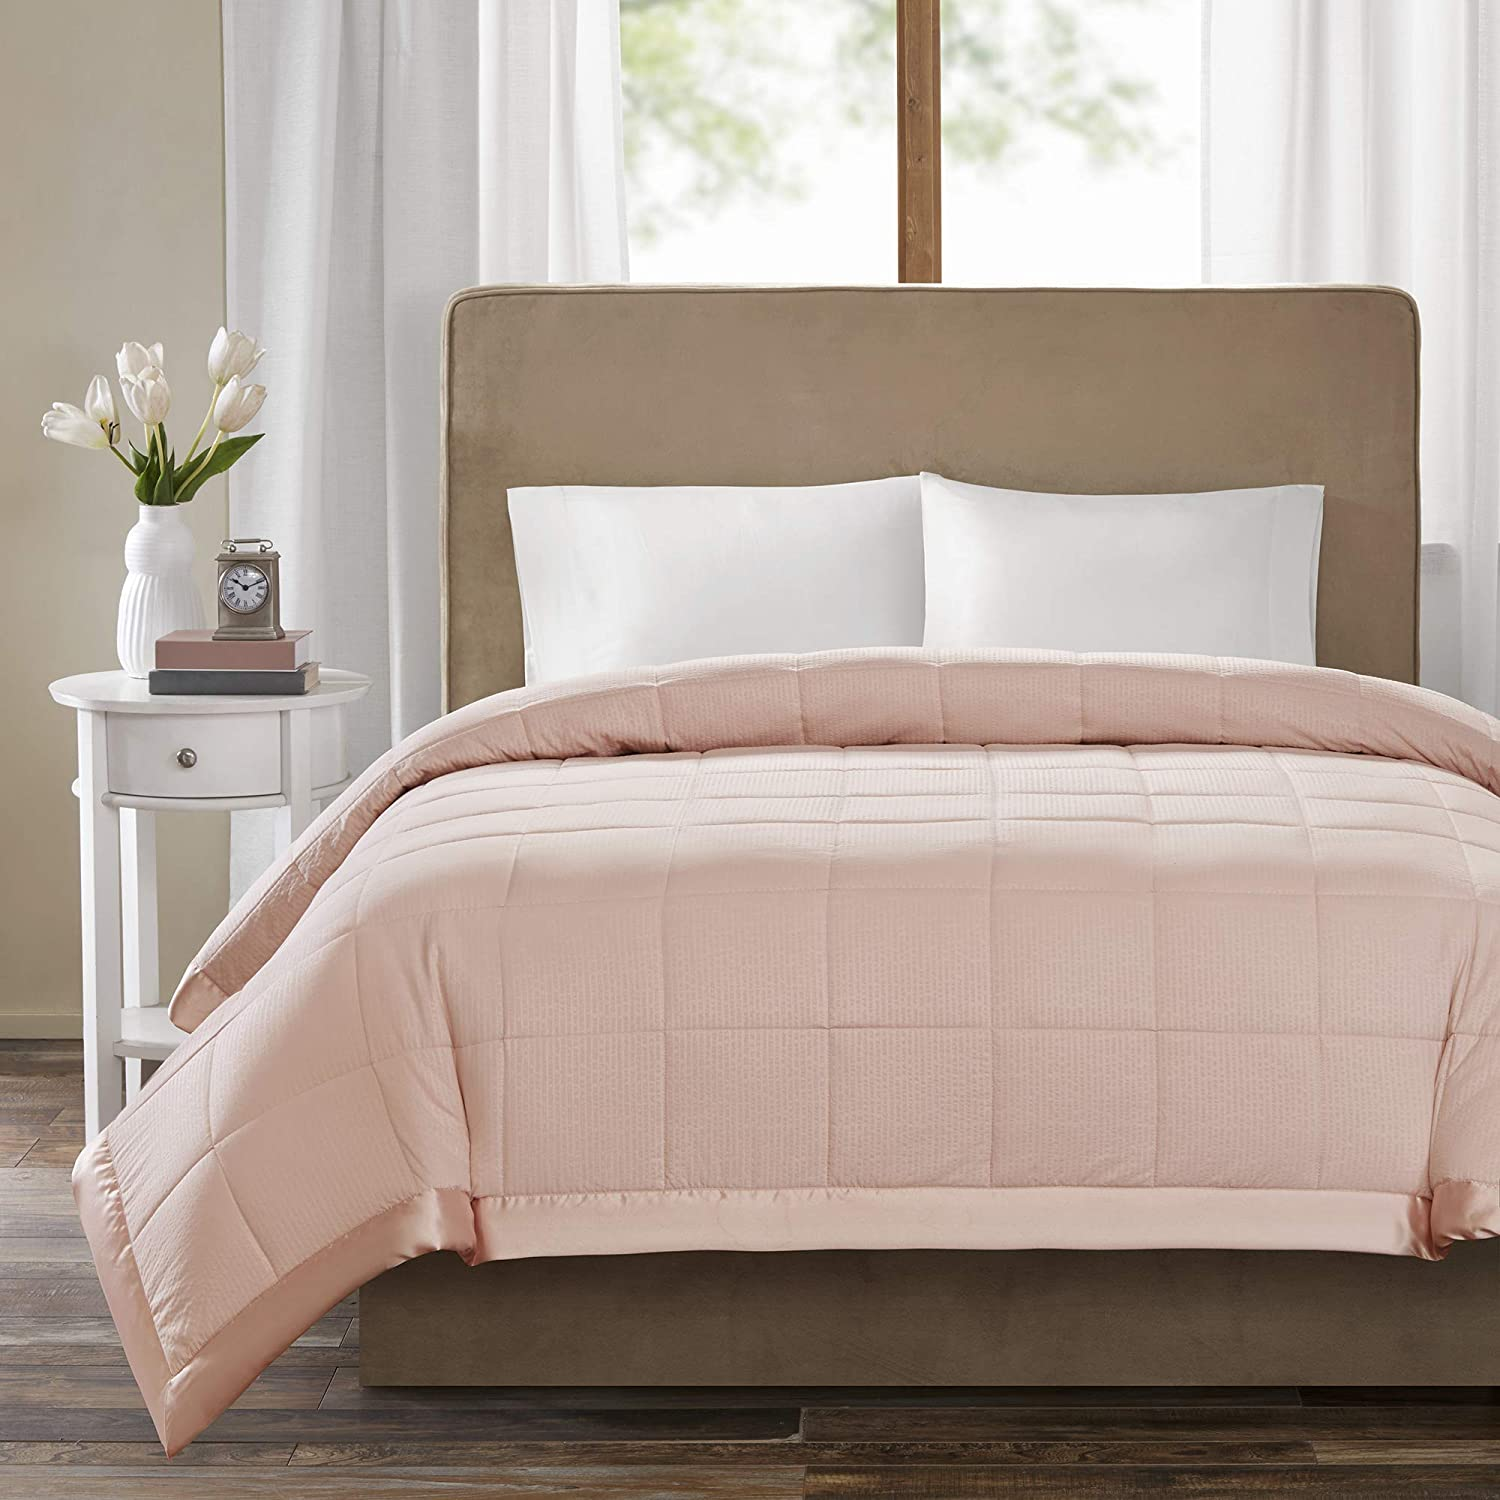 Madison Park Cambria Premium Oversized Hypoallergenic Down Alternative 3M Scotchgard Stain Resistant Quilted Blanket Bedroom Bedding, Twin Size, Blush